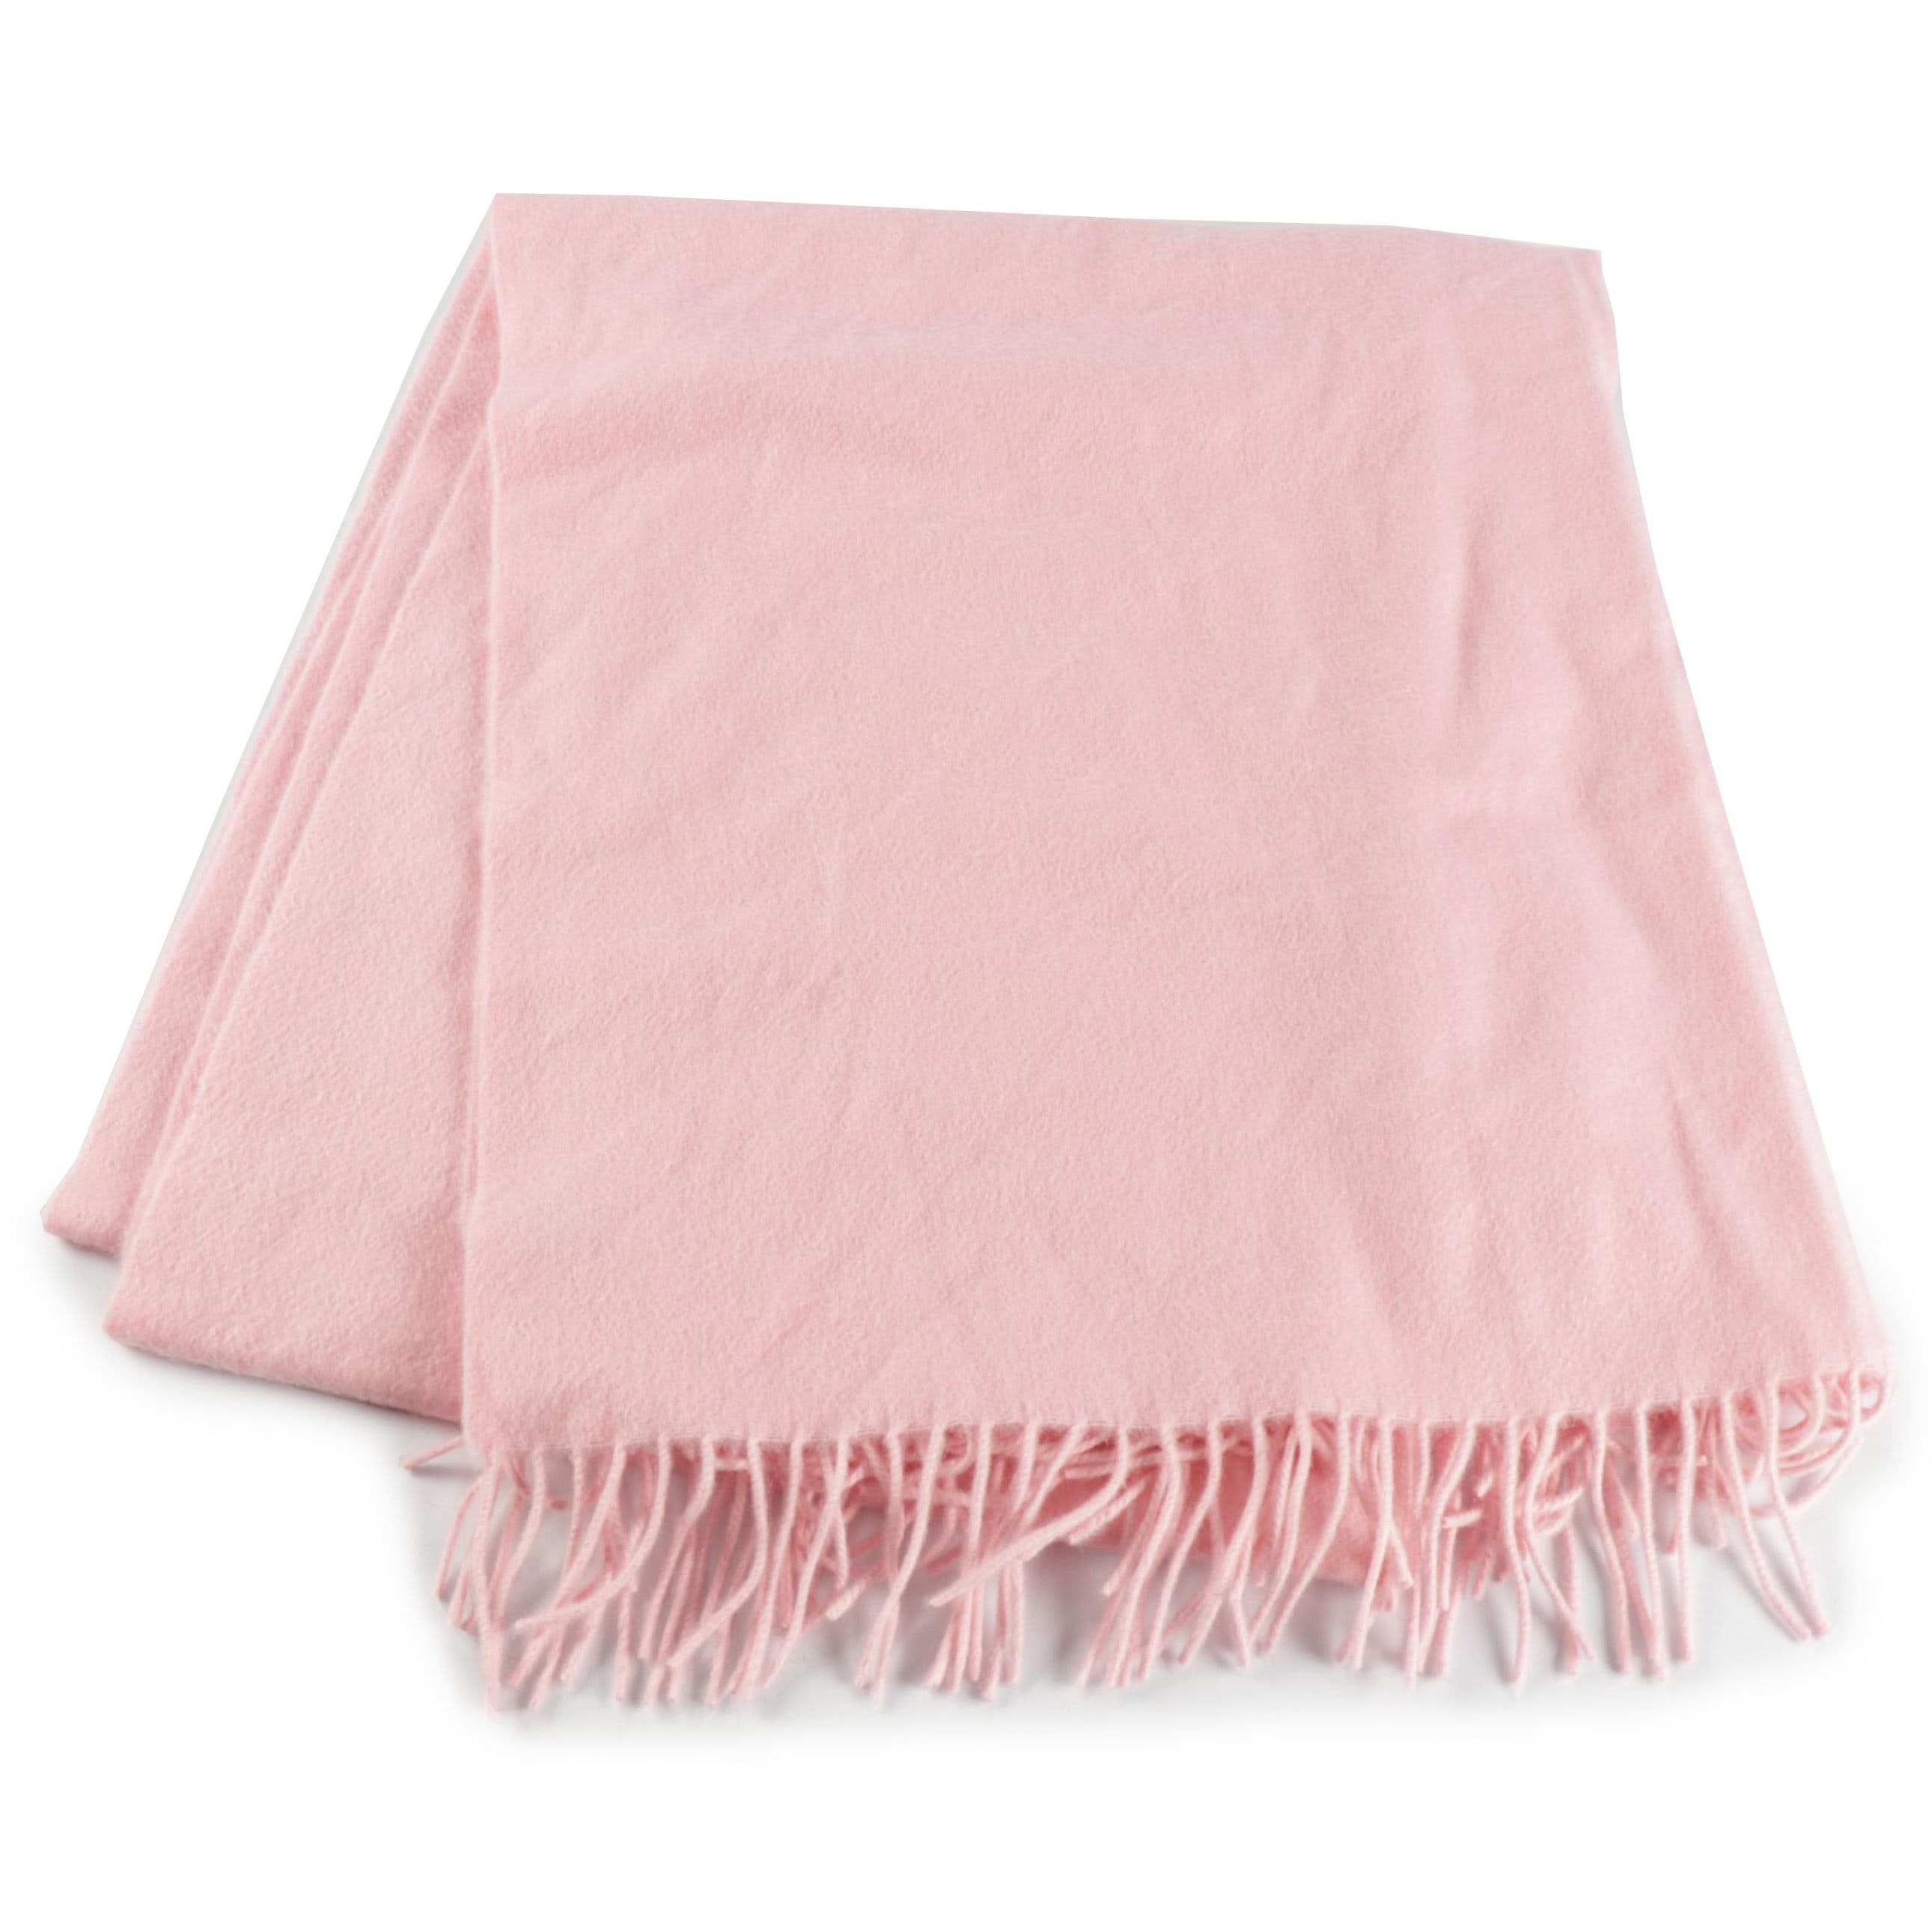 Tiffany & Co. Italian Pink Cashmere and Wool Blend Fringed Scarf